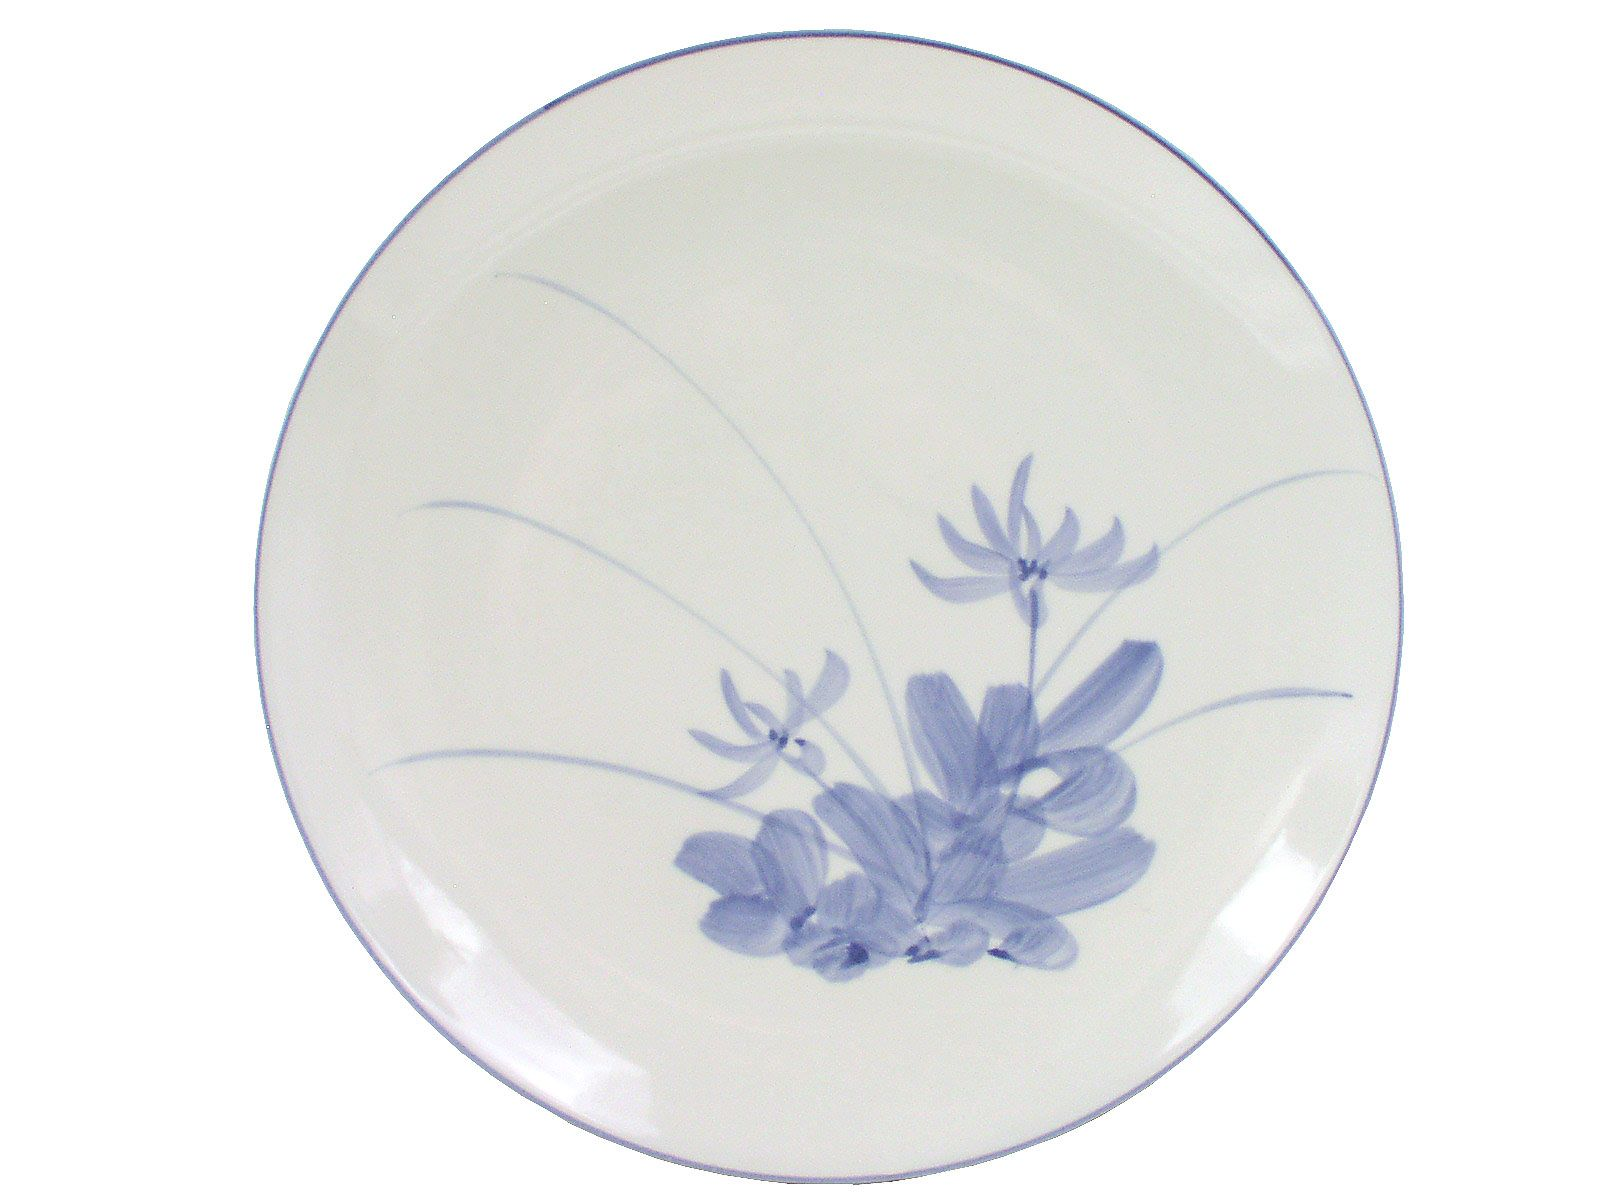 Blue and White Lotus Blossom Porcelain Serving Plate